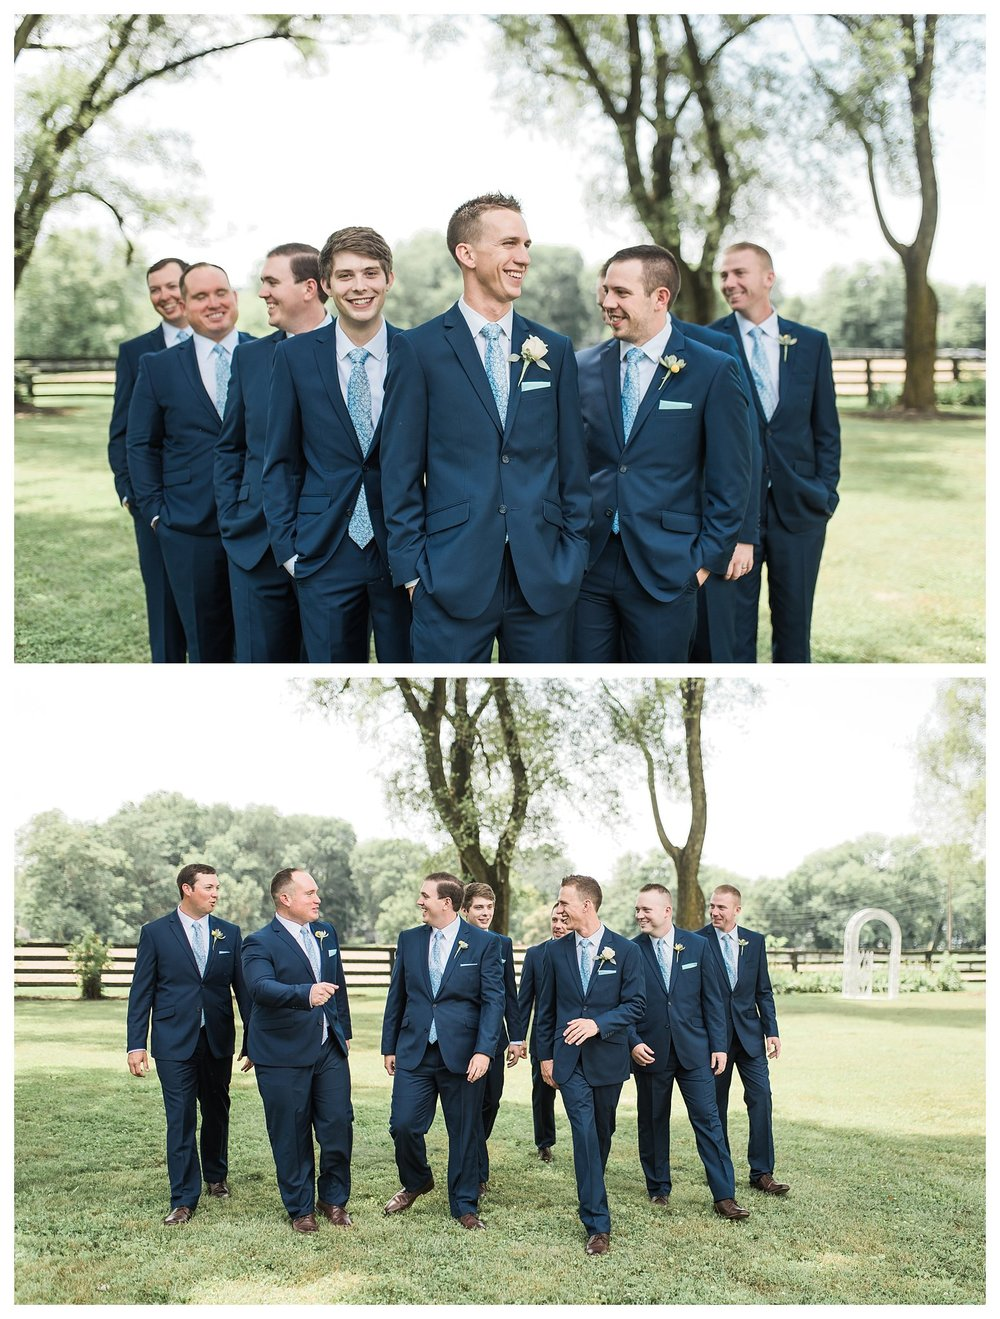 richwood-on-the-river-everleigh-photography-roby-and-tabitha-foree-wedding-34